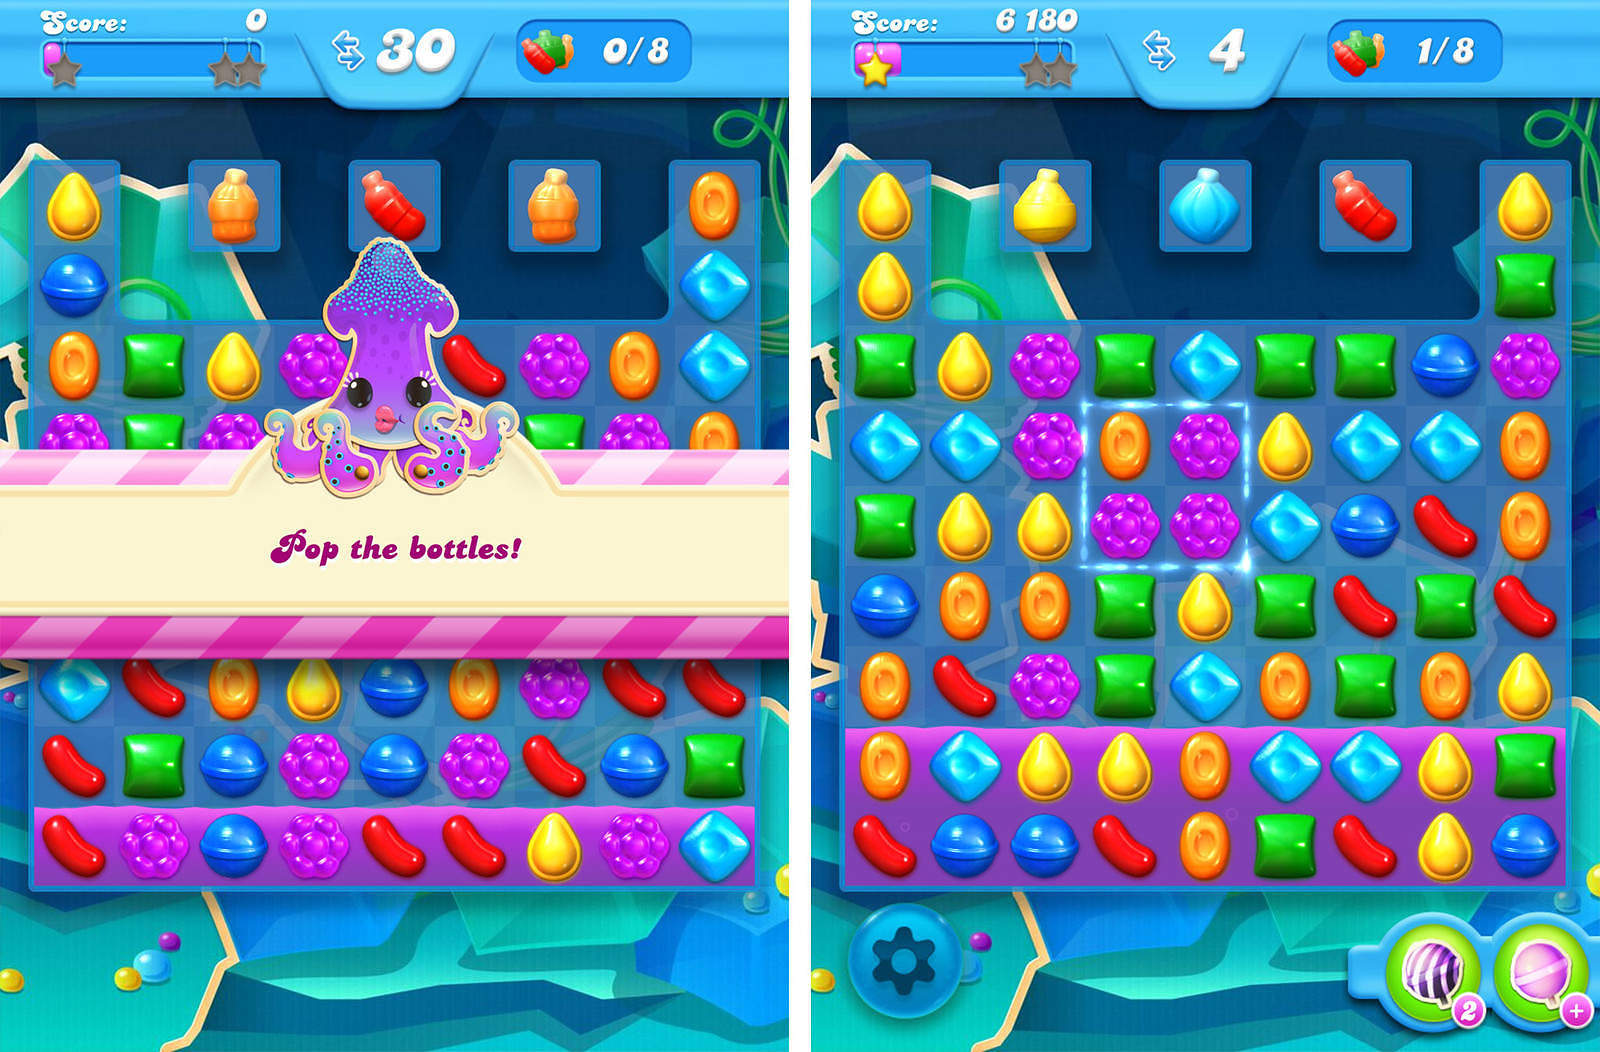 Candy Crush Soda Livello 52